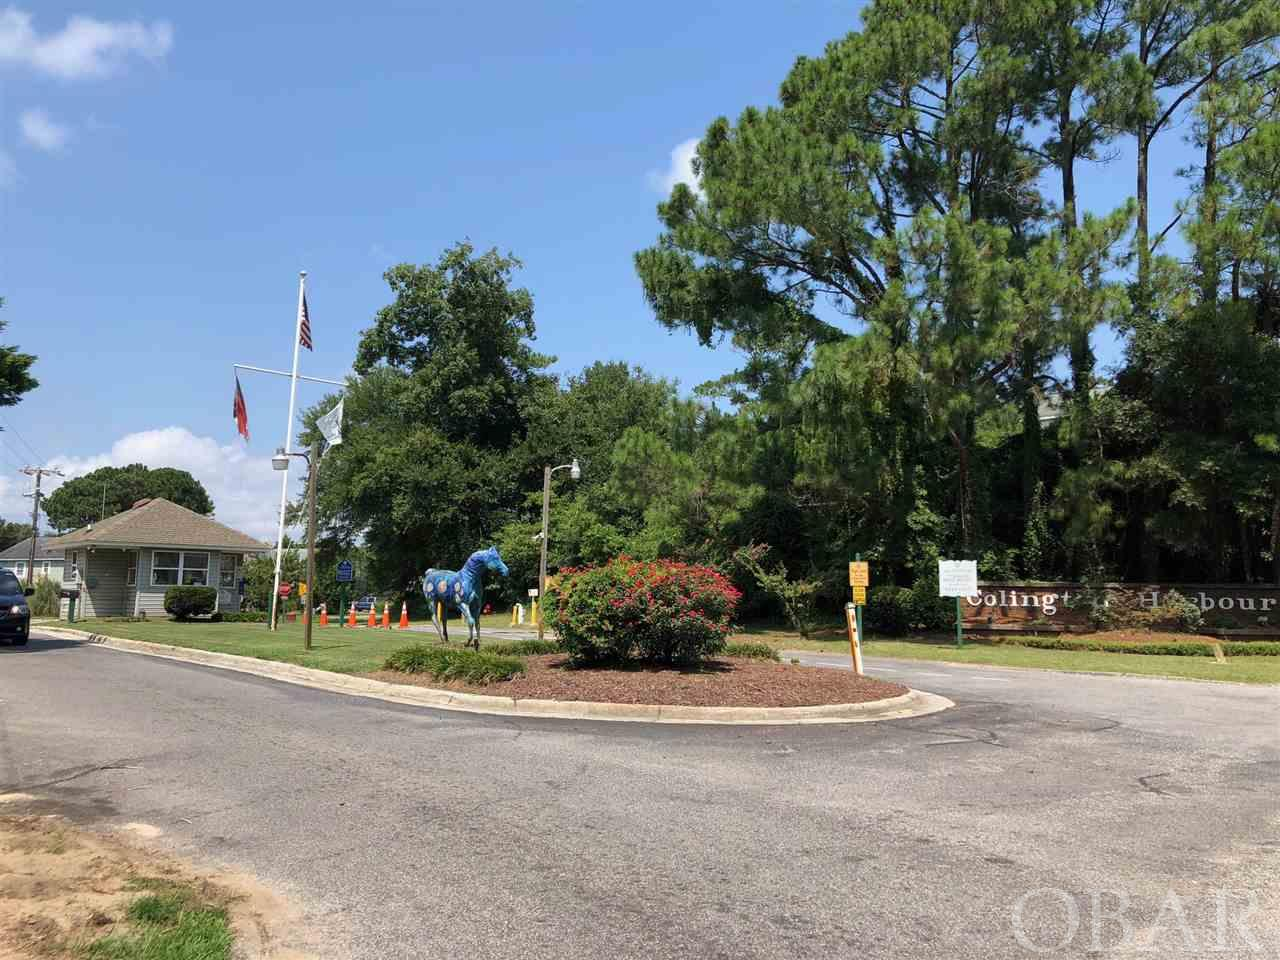 111 Broadbay Drive,Kill Devil Hills,NC 27948,Lots/land,Broadbay Drive,101858